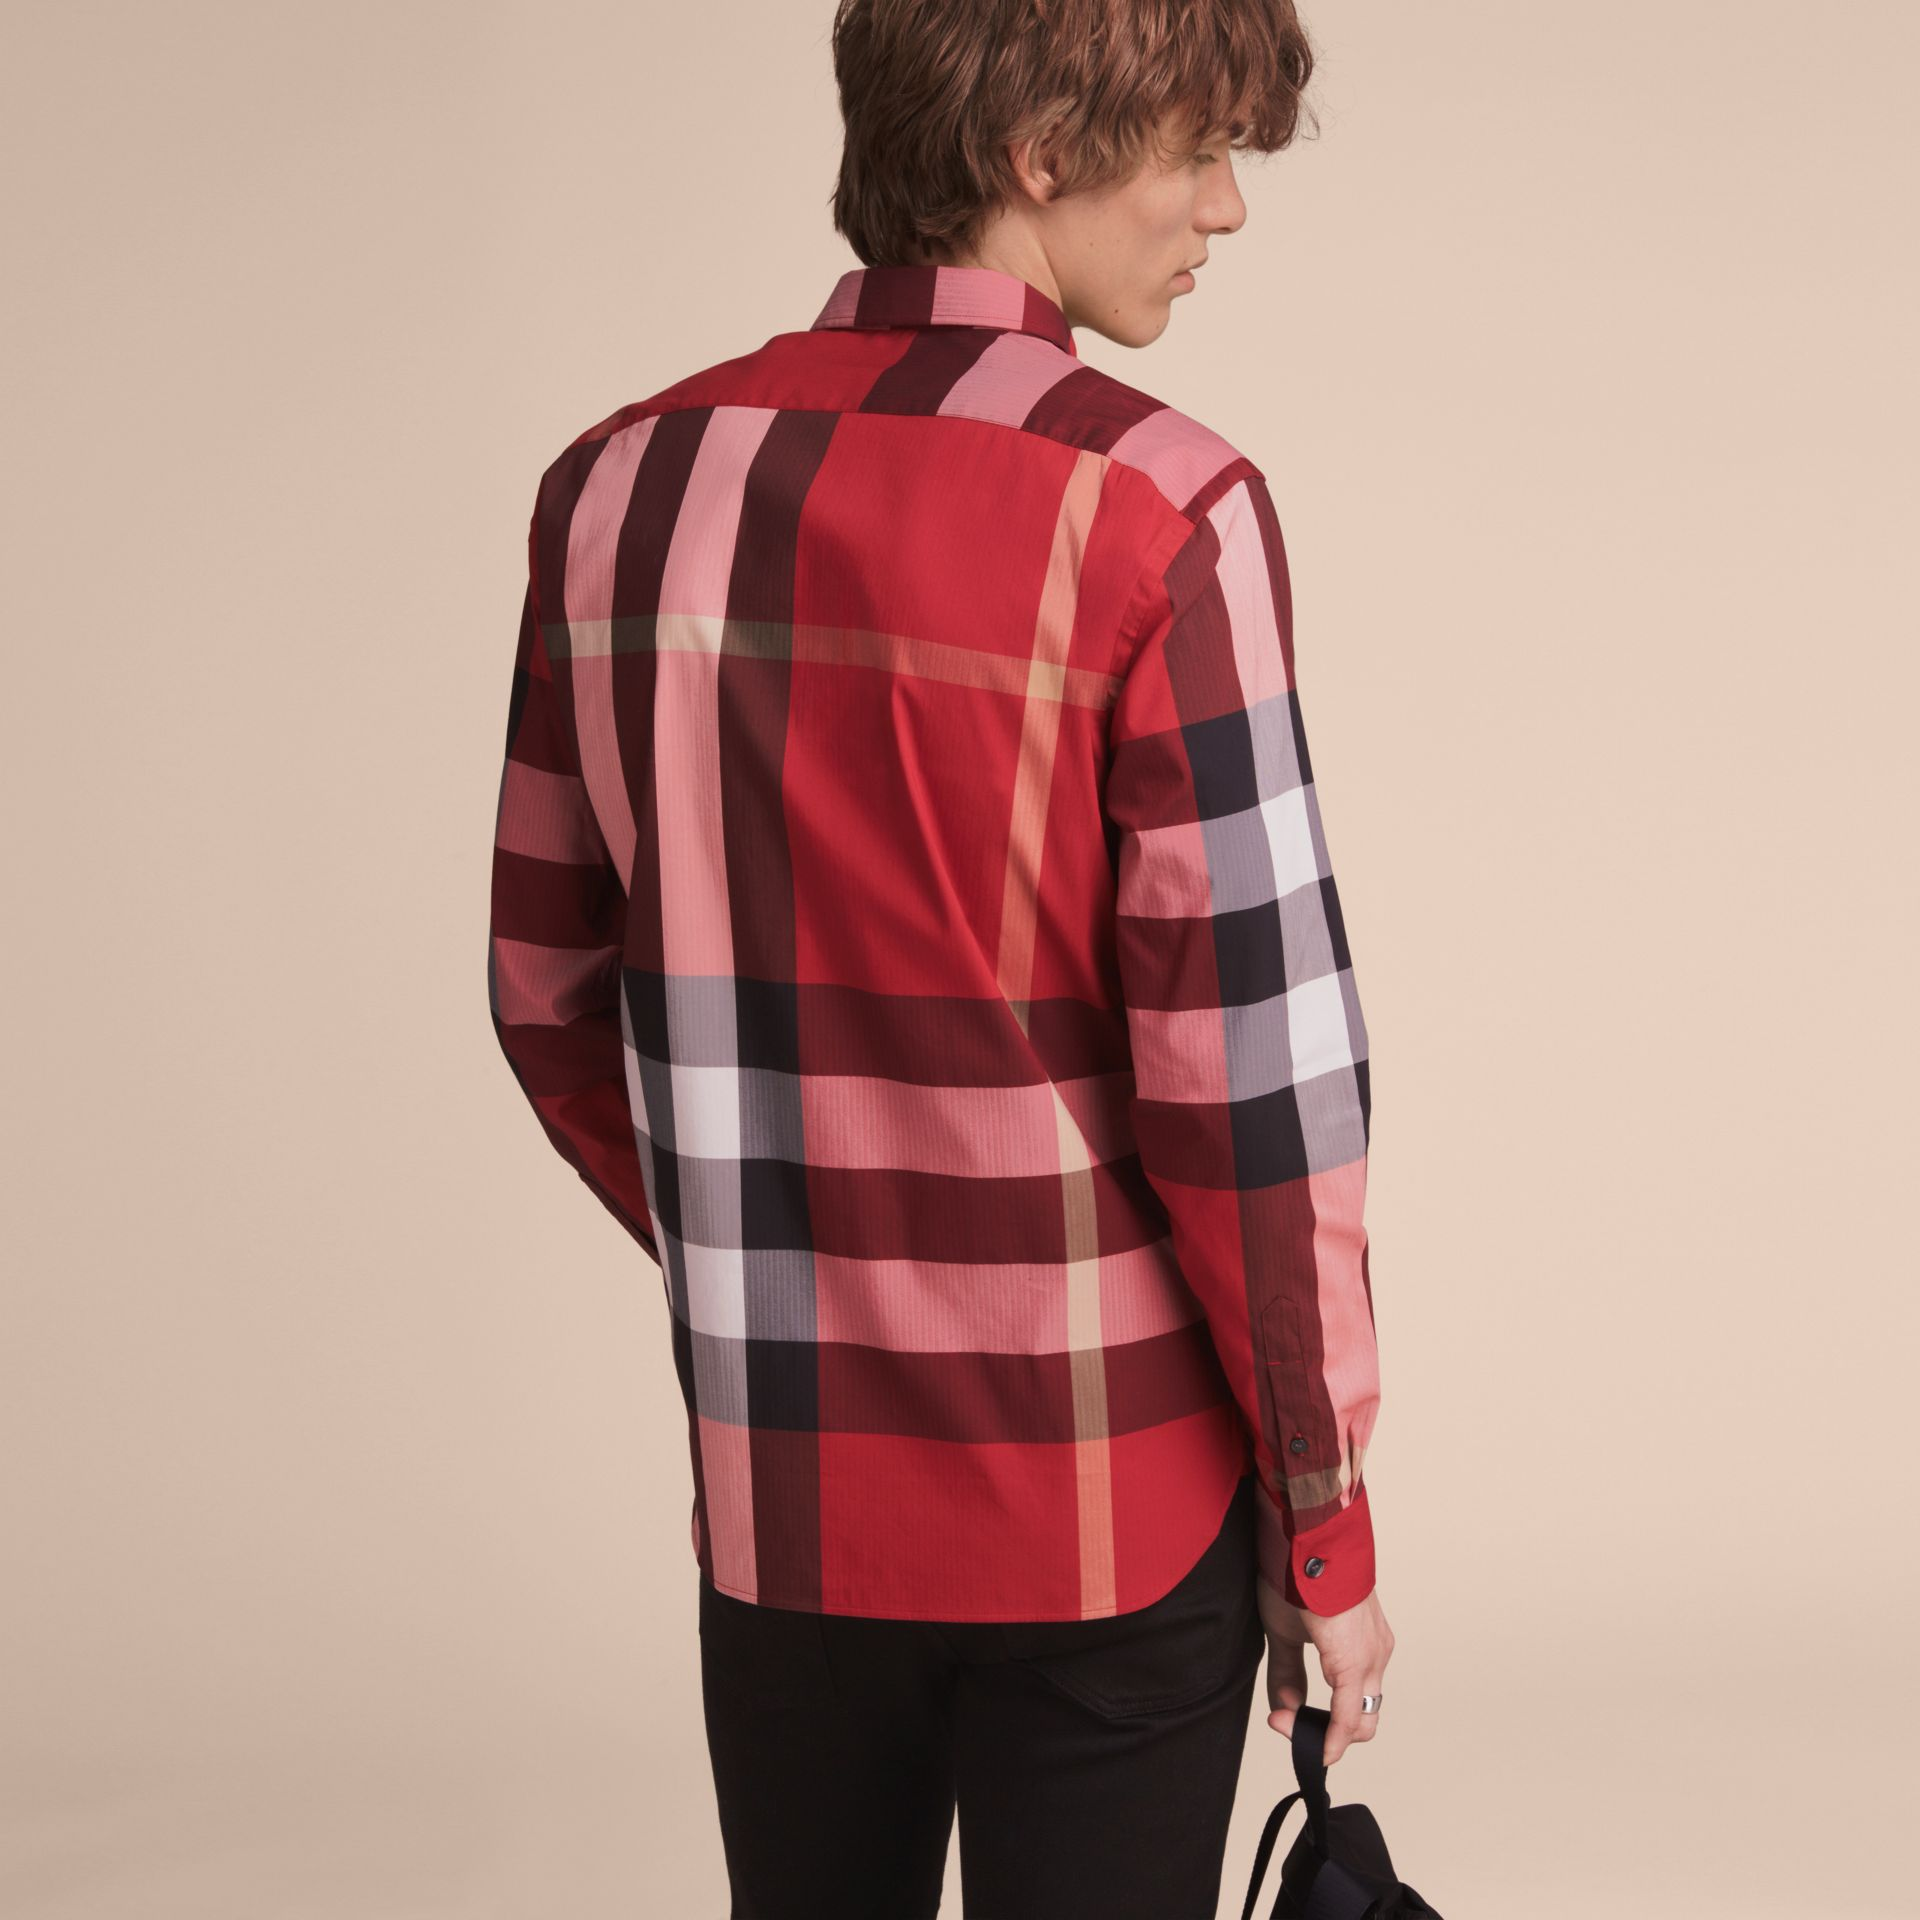 Button-down Collar Check Stretch Cotton Blend Shirt in Parade Red - Men | Burberry Australia - gallery image 3